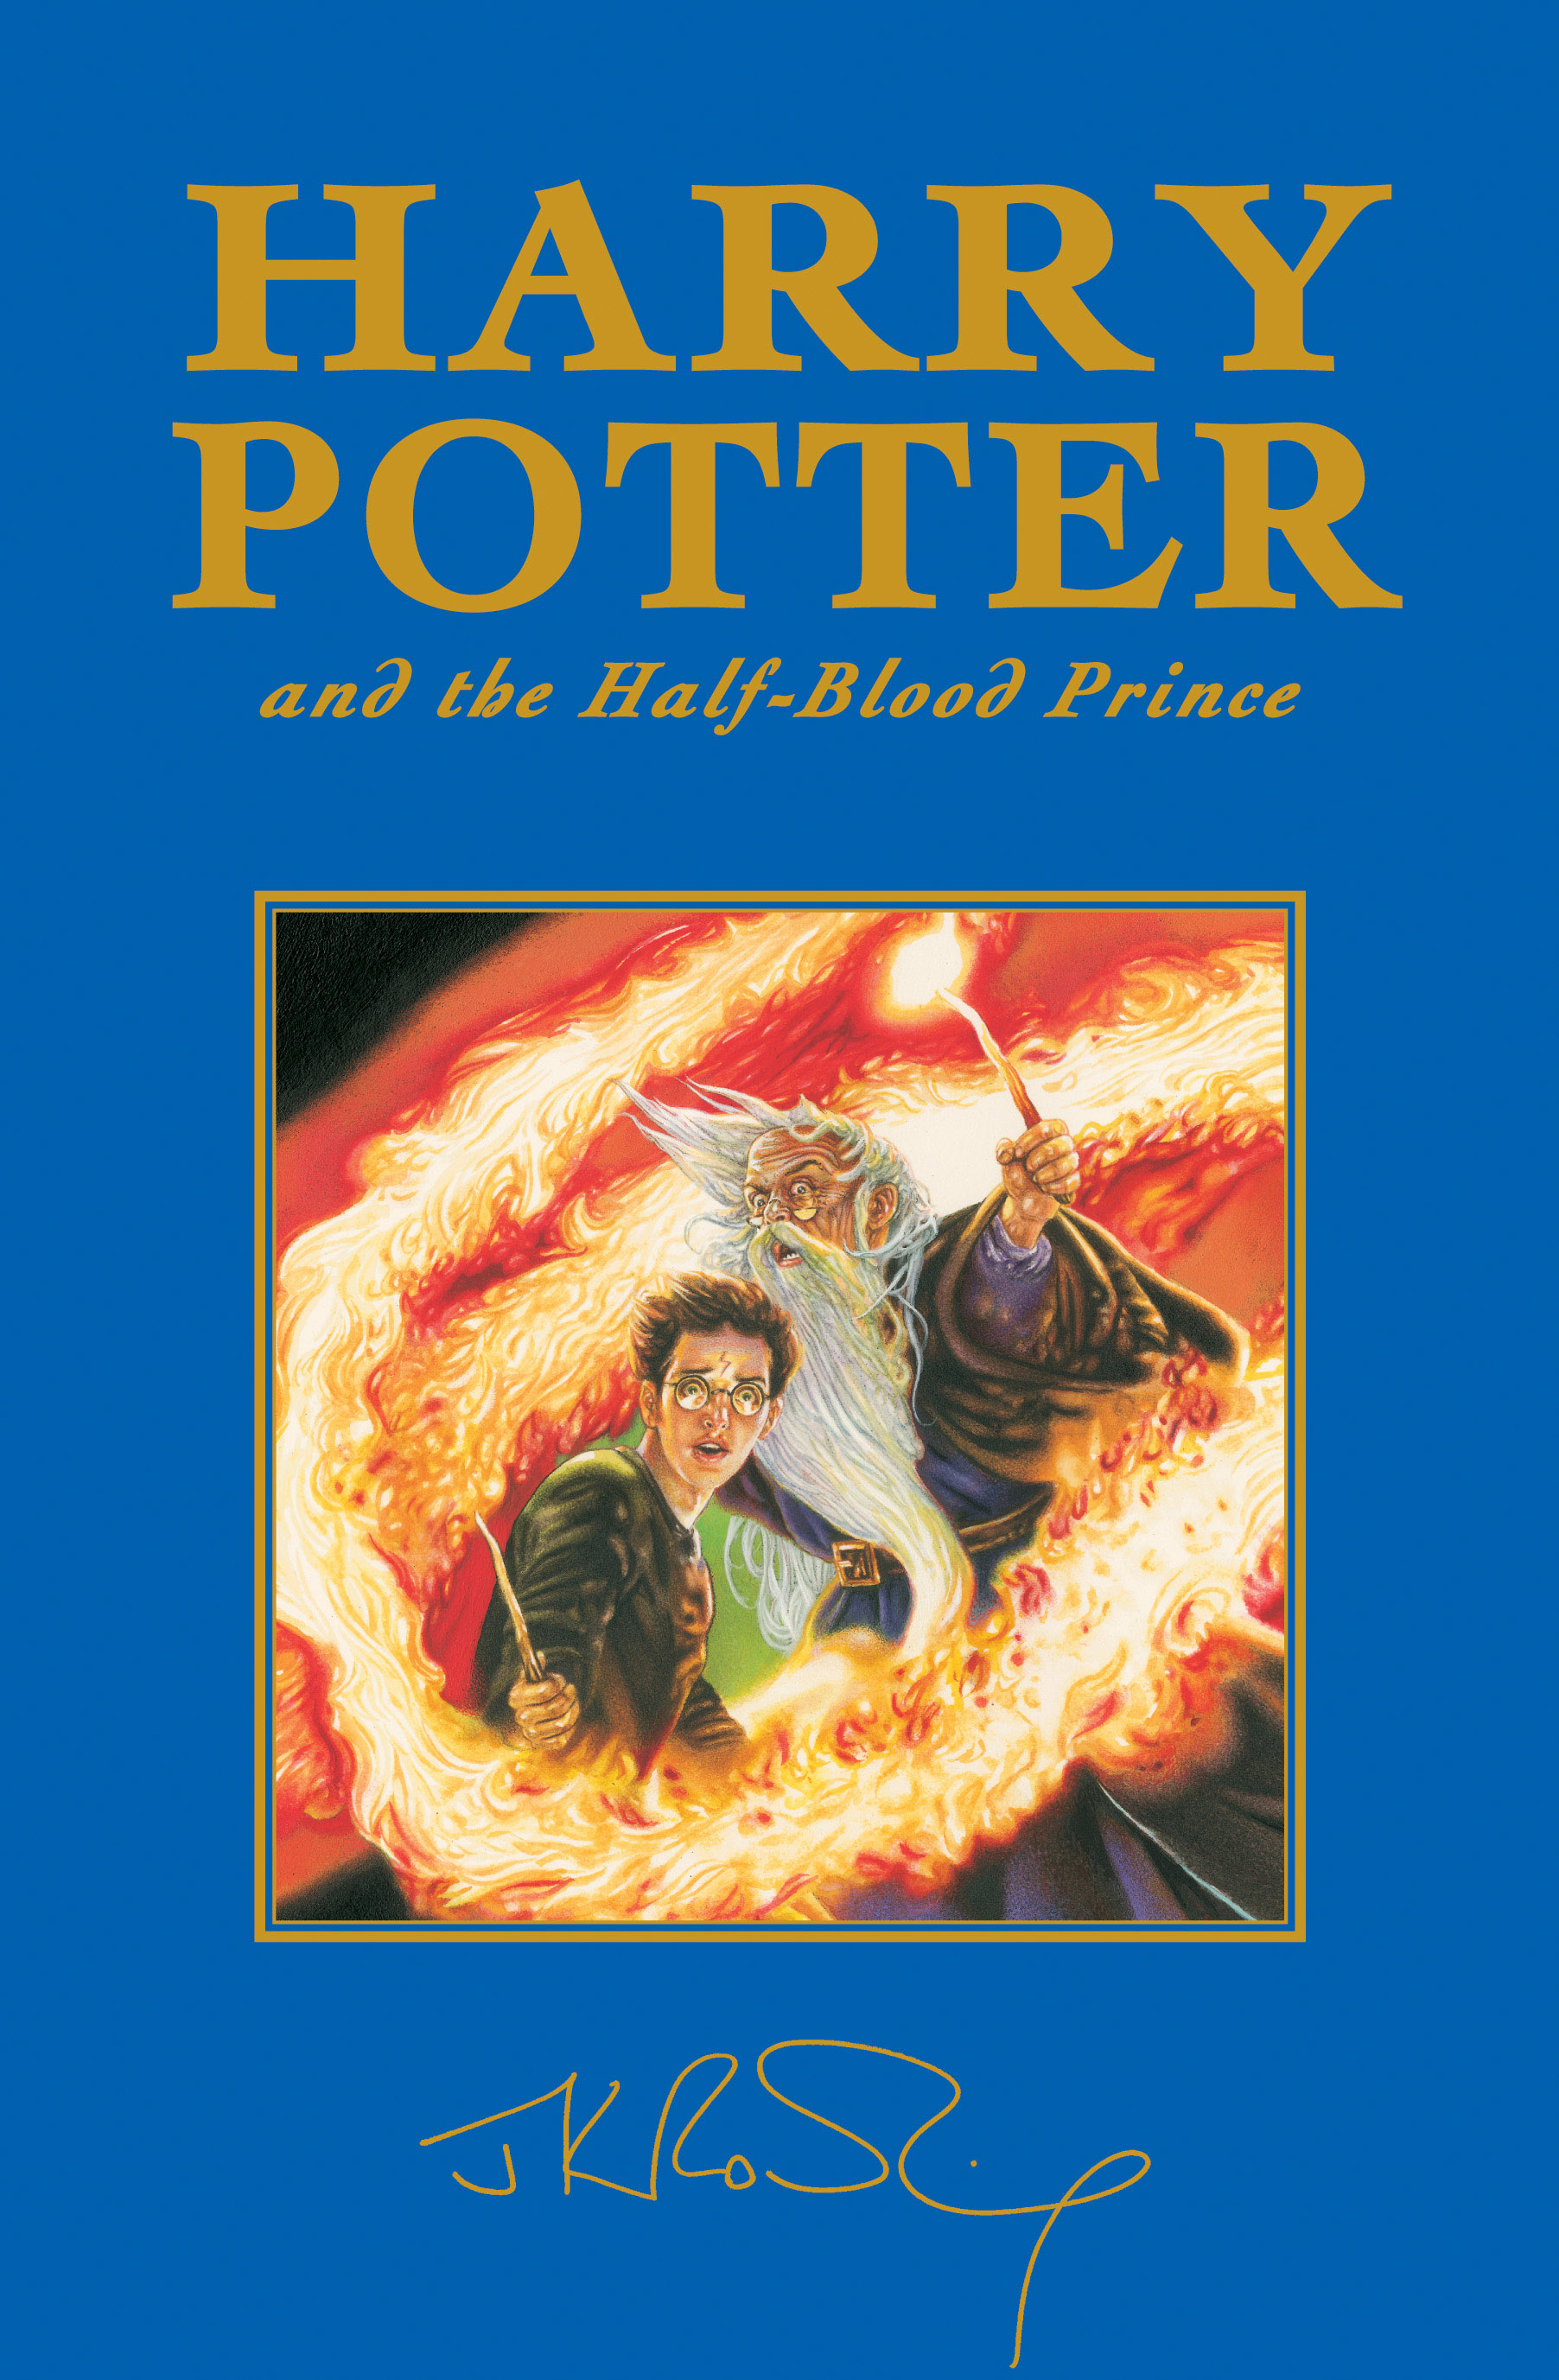 Harry Potter and the Half Blood Prince special edition